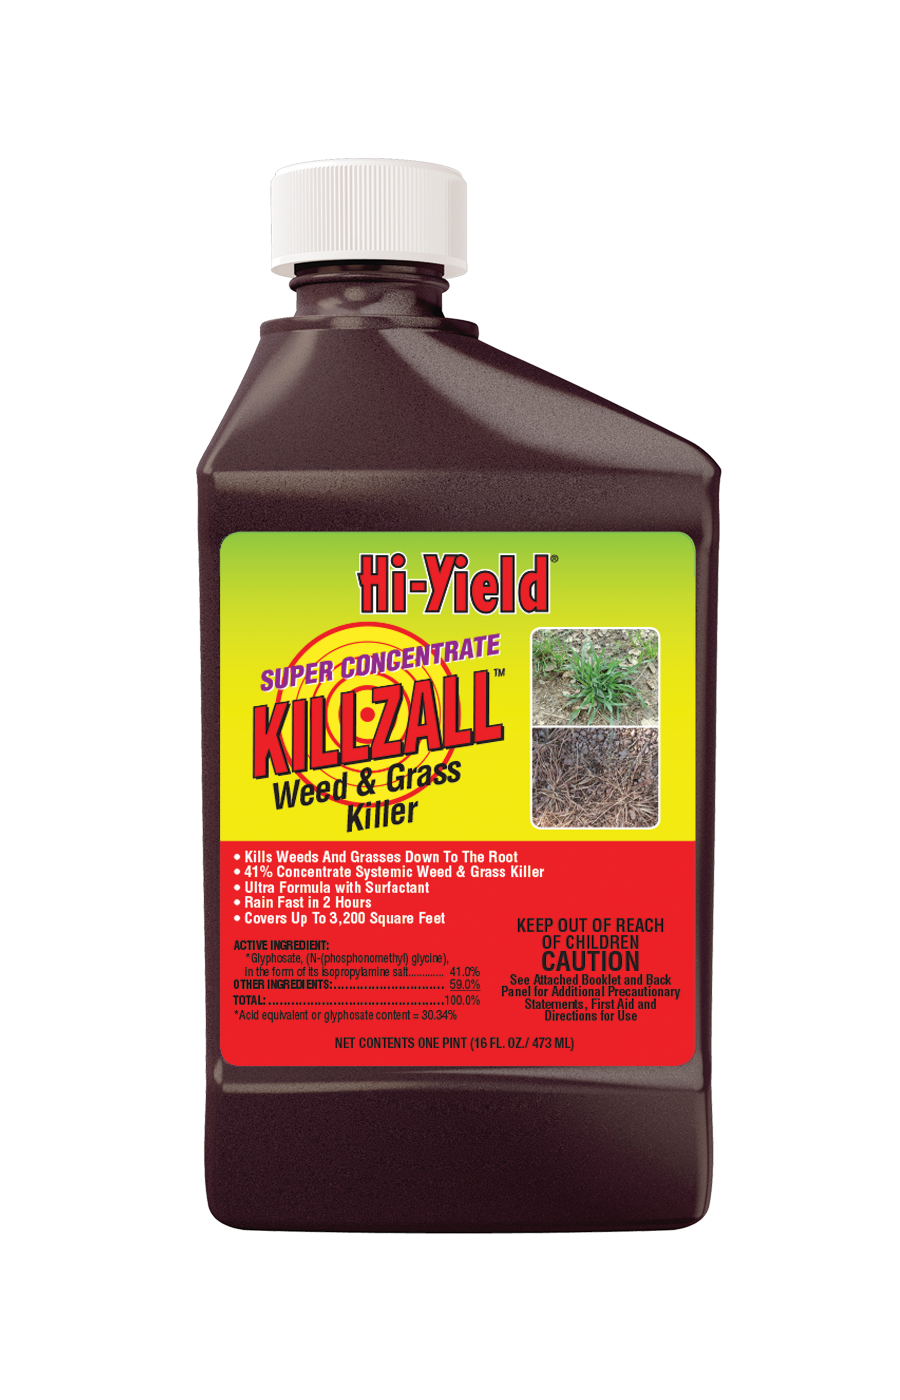 Killzall-Weed-and-Grass-Killer-16oz-33691-Planogram-L.png